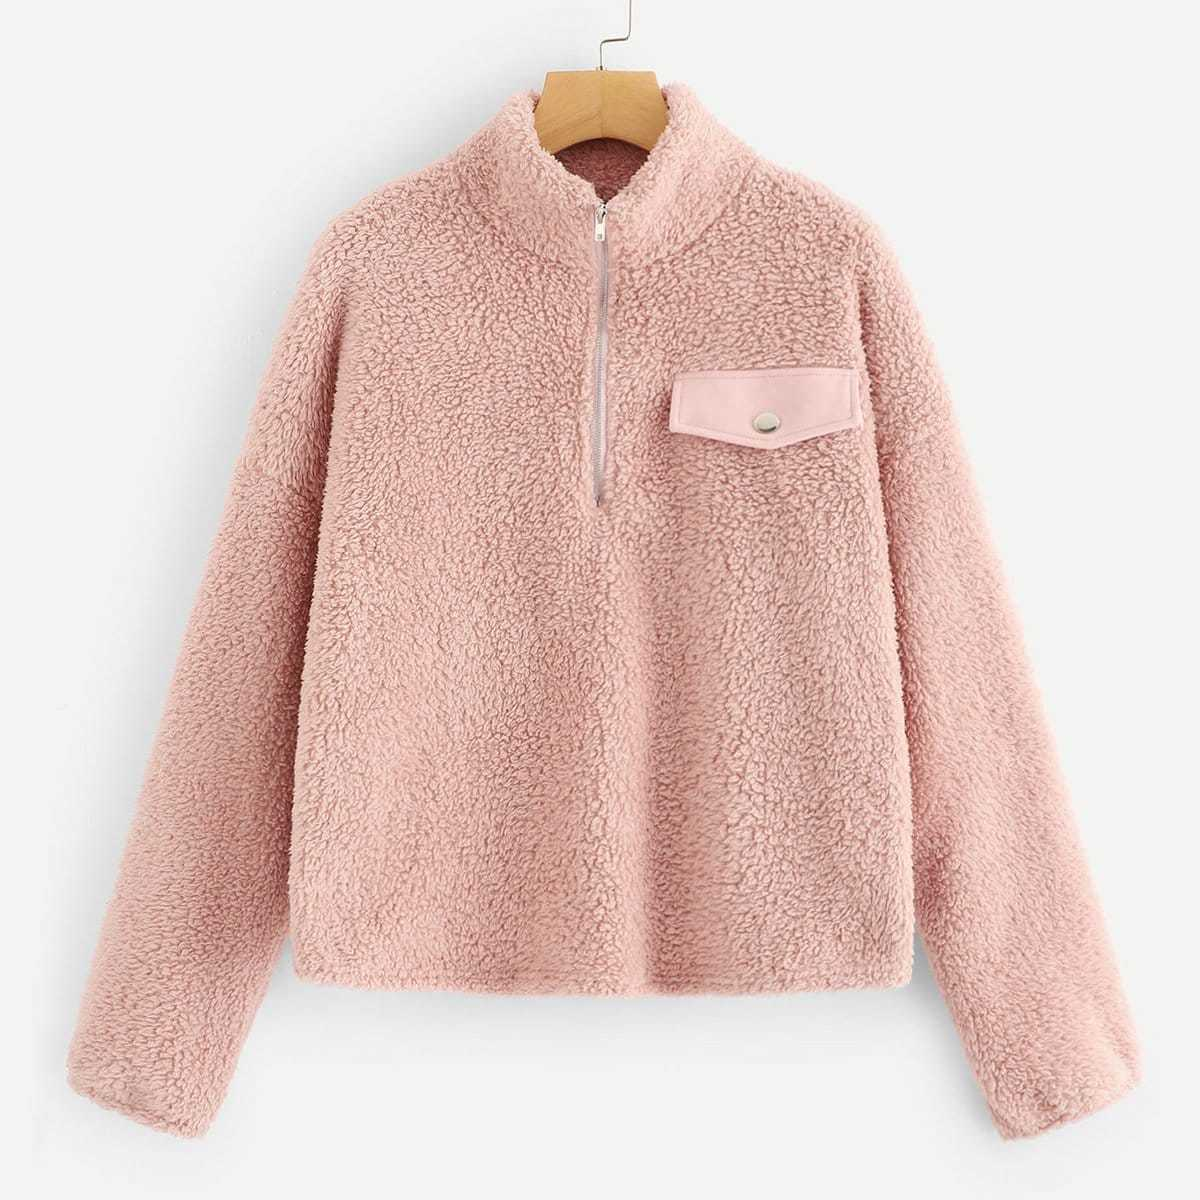 Zip Half Placket Teddy Pullover Jacket in Pink by ROMWE on GOOFASH